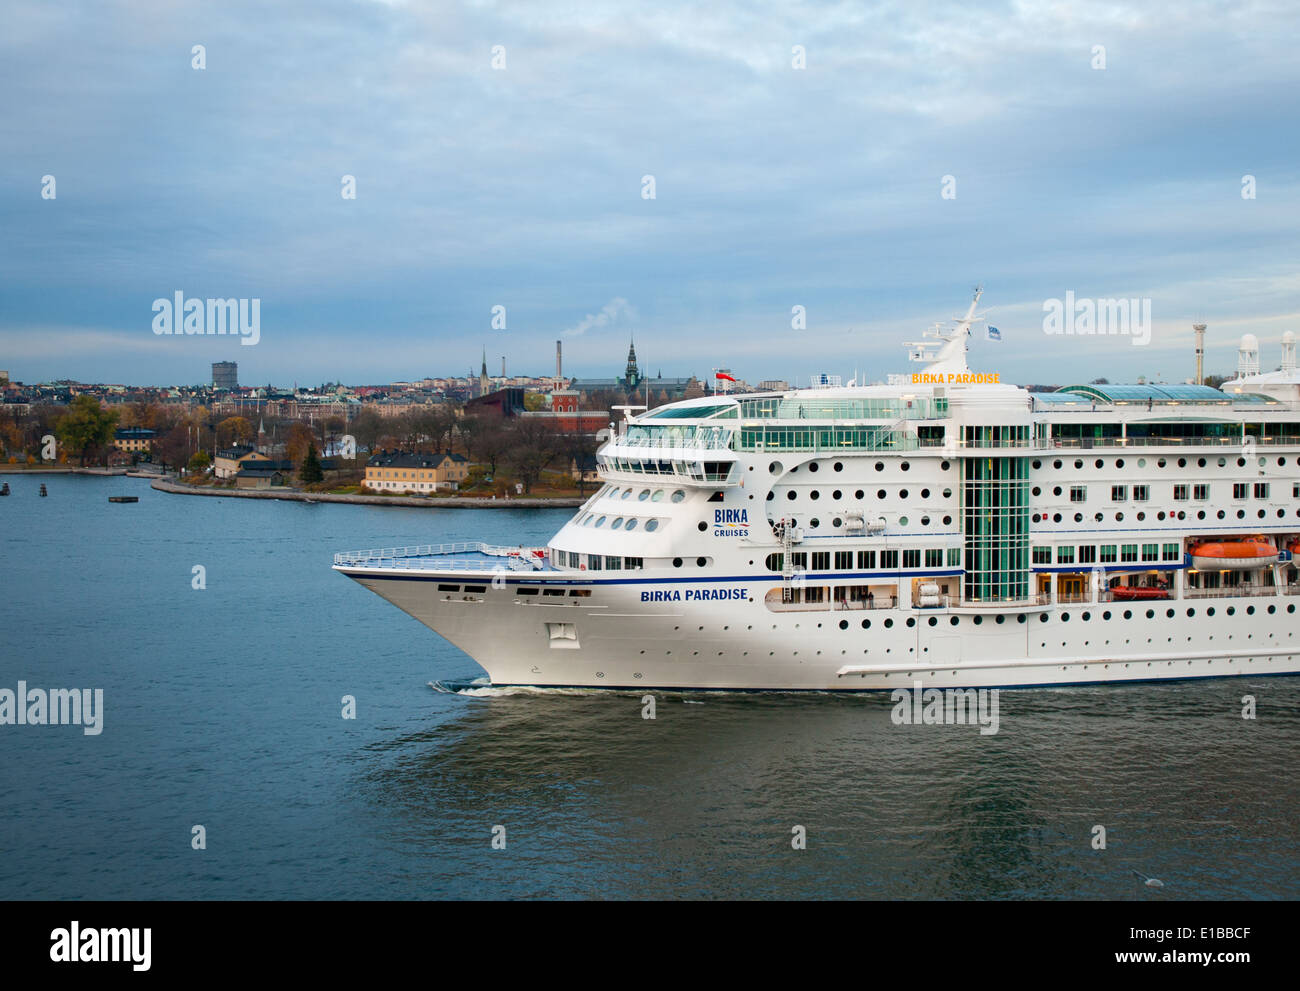 The MS Birka Paradise (renamed the MS Birka Stockholm in 2013), a cruise ship, pulls into the harbour in Stockholm, Stock Photo